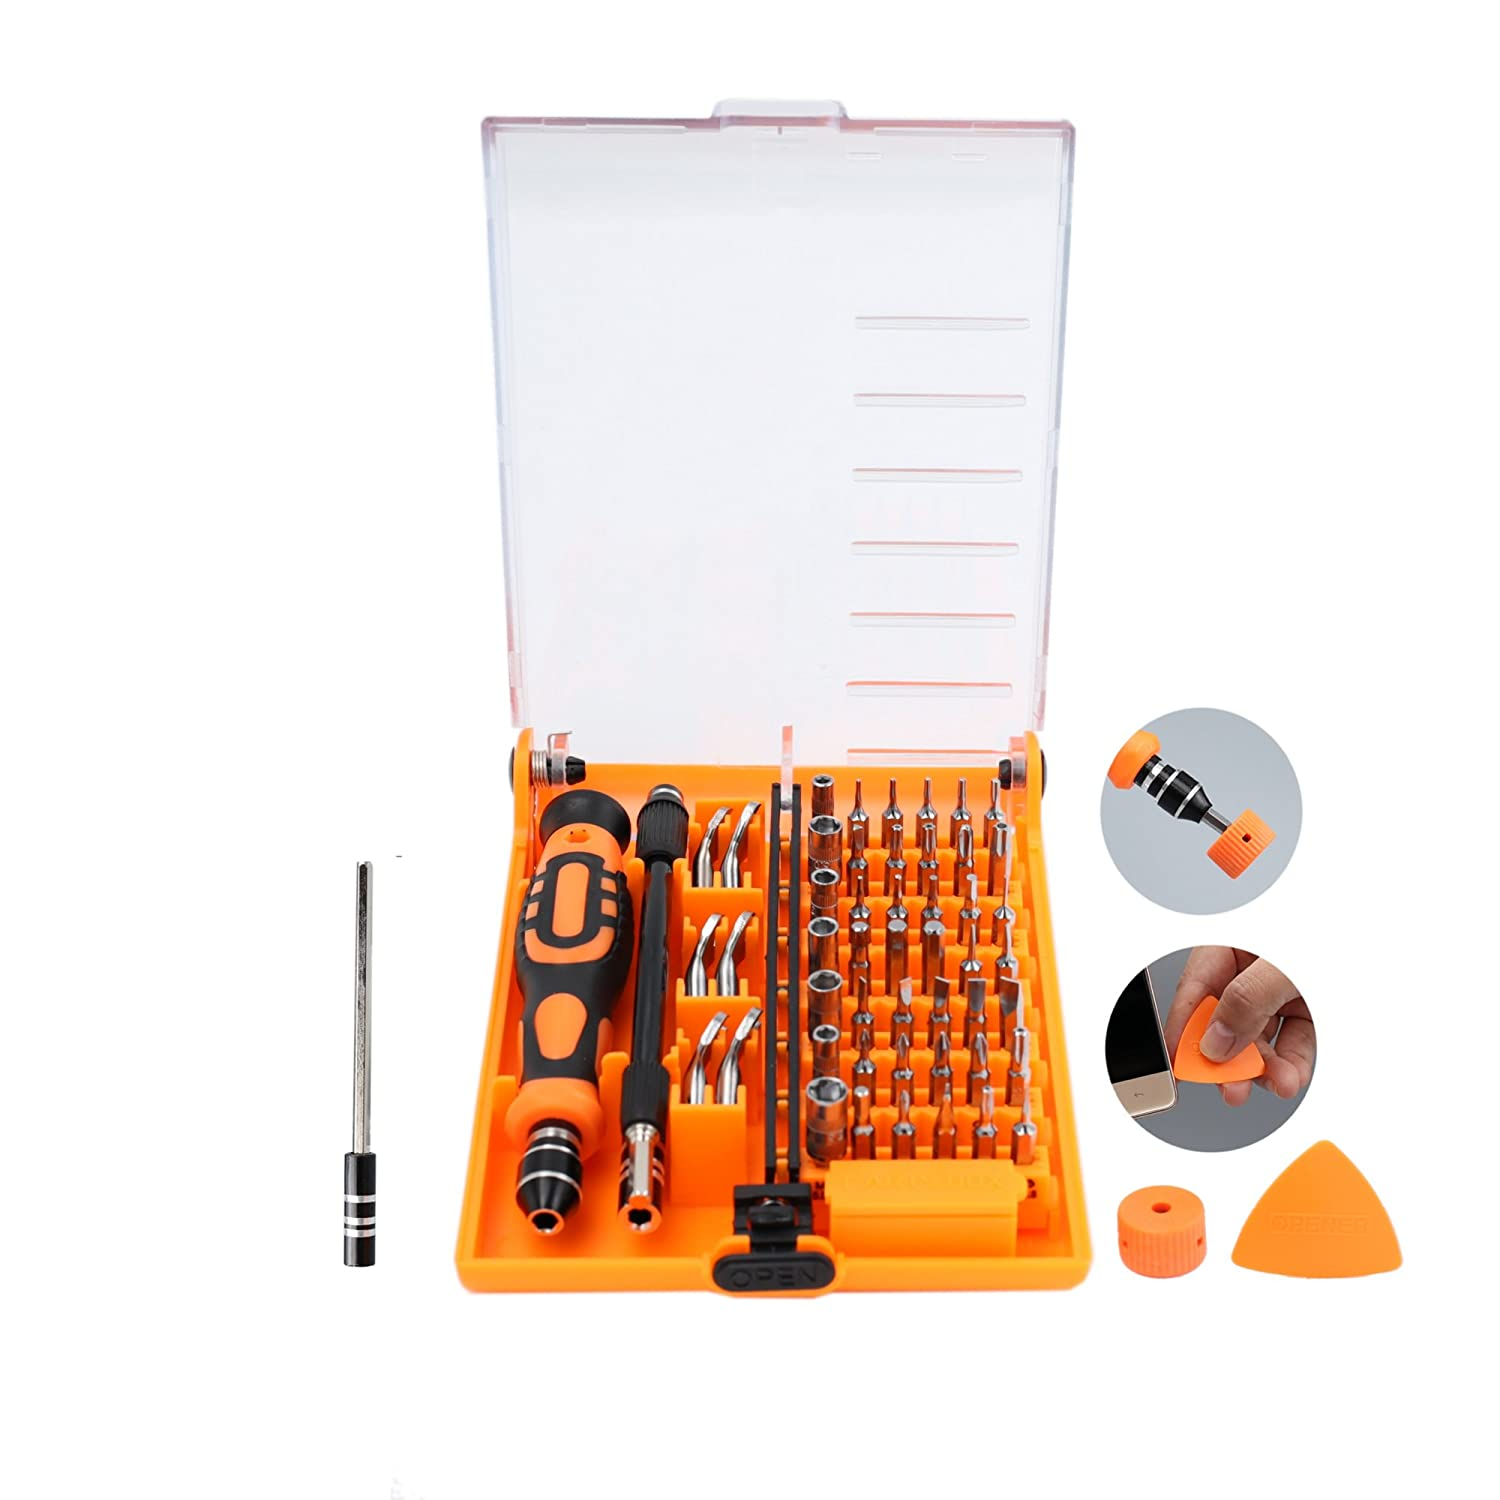 Ceatech Magnetic Precision Screwdriver Repair Set + Magnetizer + Opener - Cellphone,Computer, Drone, Laptop, Glasses Hardware Tool Kit - Craftsmen, Electricians,Homeowners, Jewelers CAYEDA DIRECT